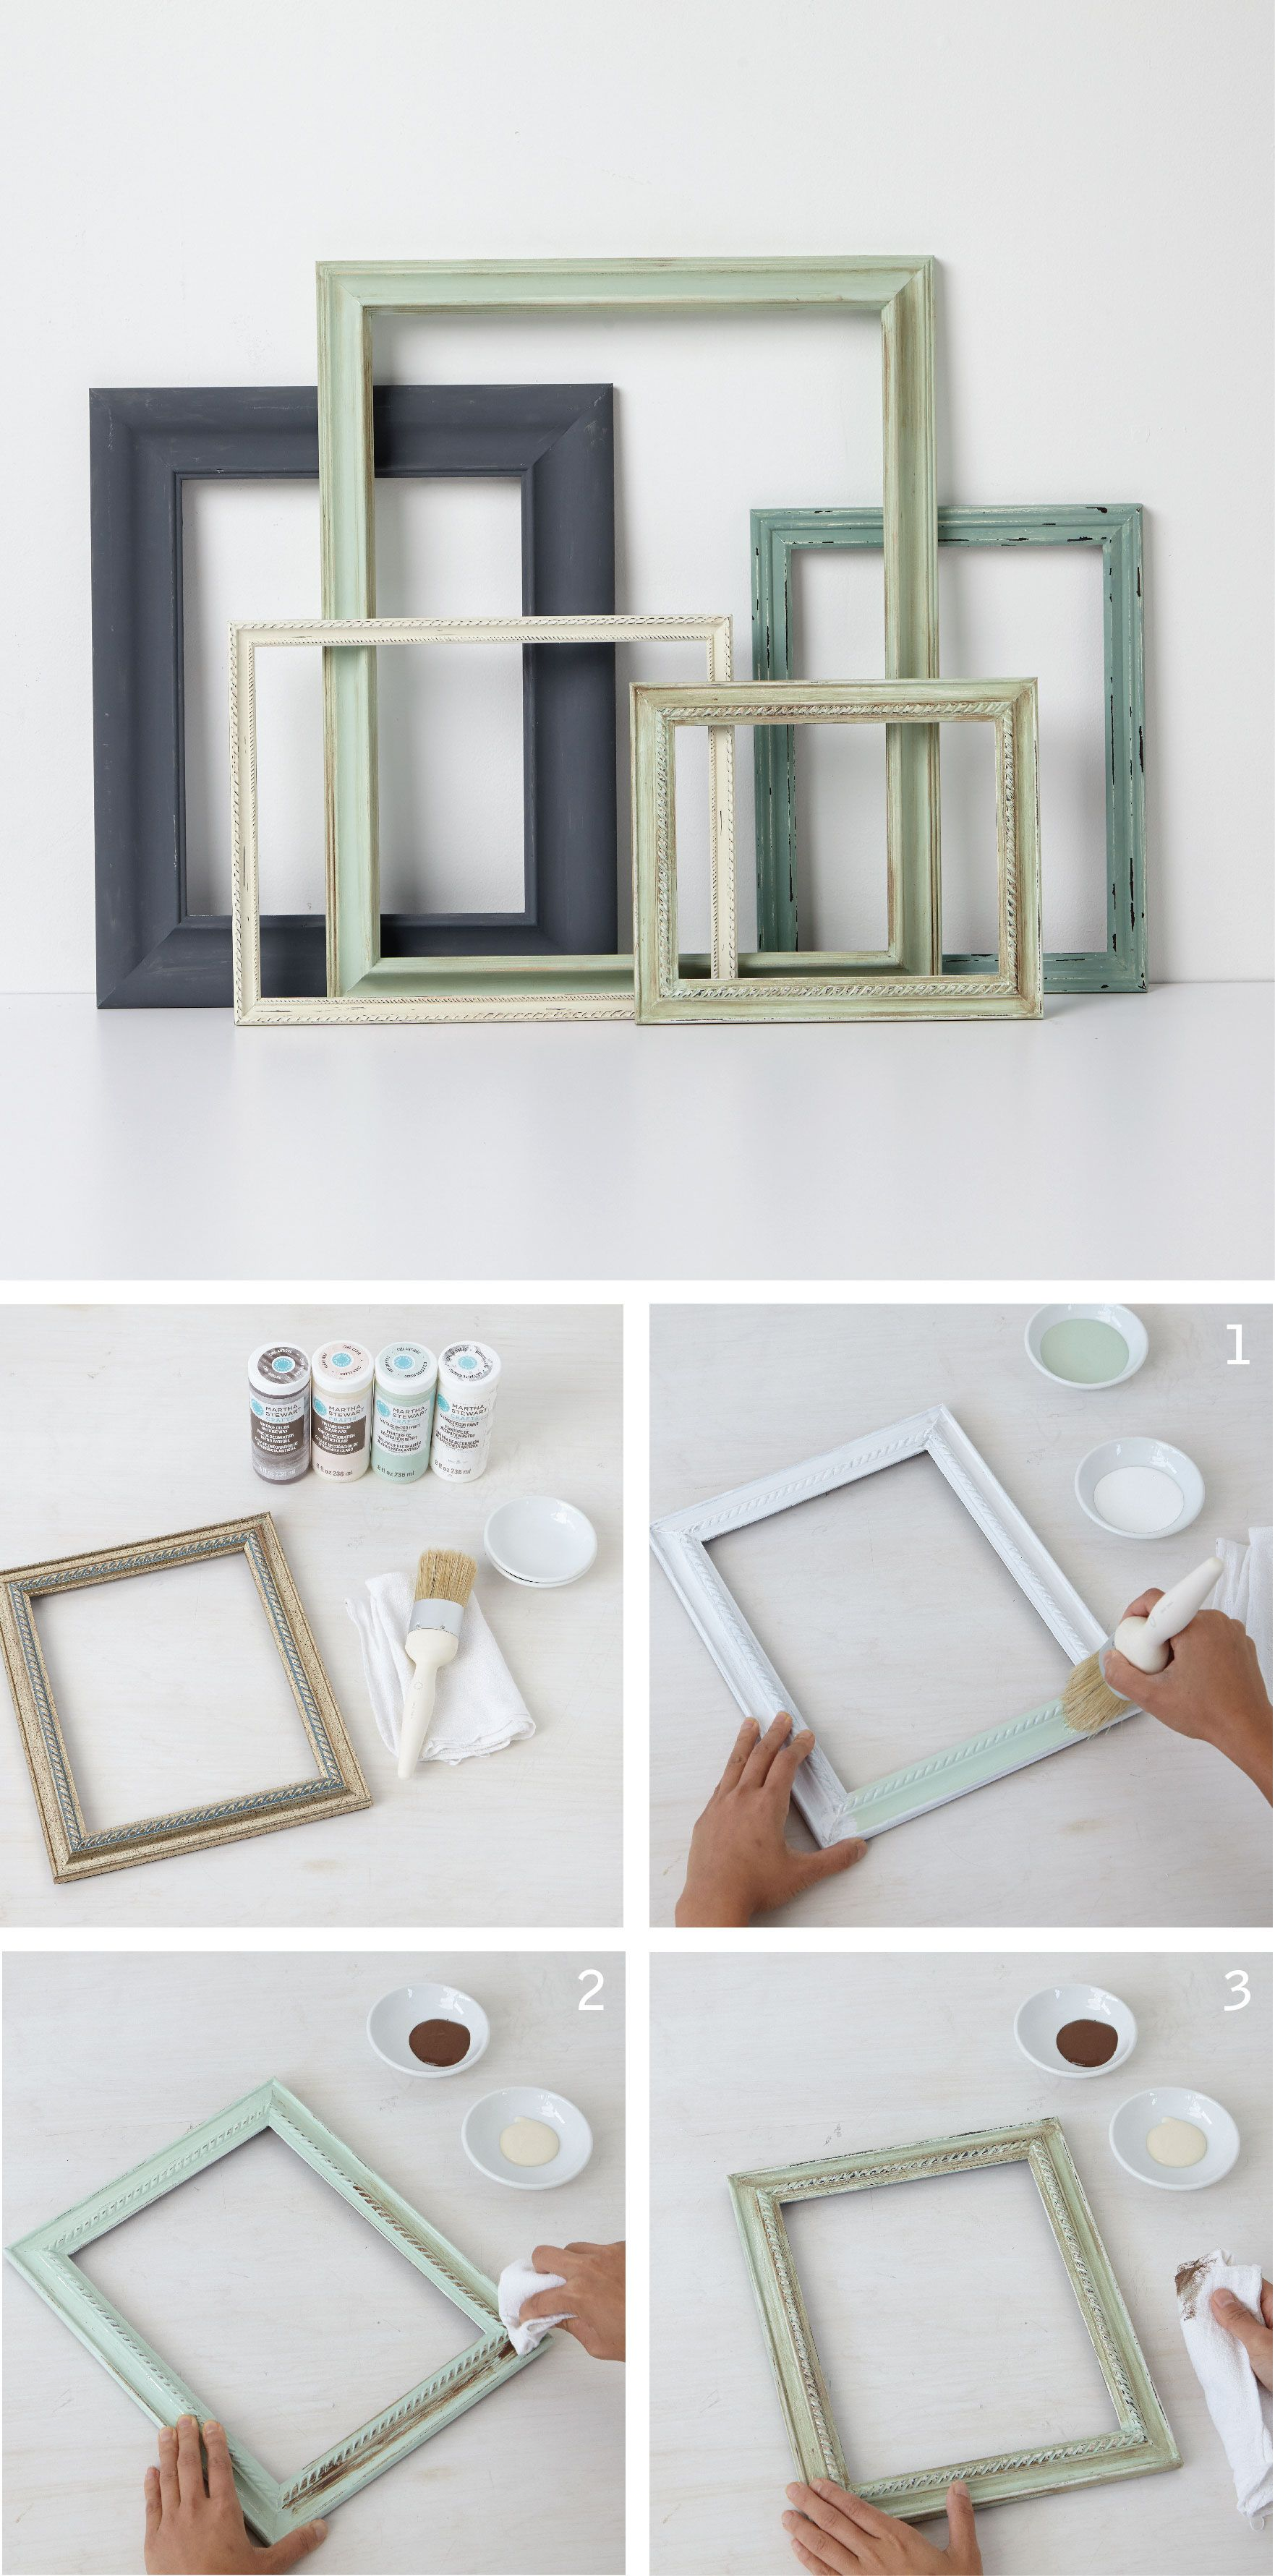 Vintage frames martha stewart crafts vintage decor and martha transform plain picture frames into vintage inspired masterpieces with martha stewart crafts vintage decor paint try using vintage decor wax for a jeuxipadfo Choice Image